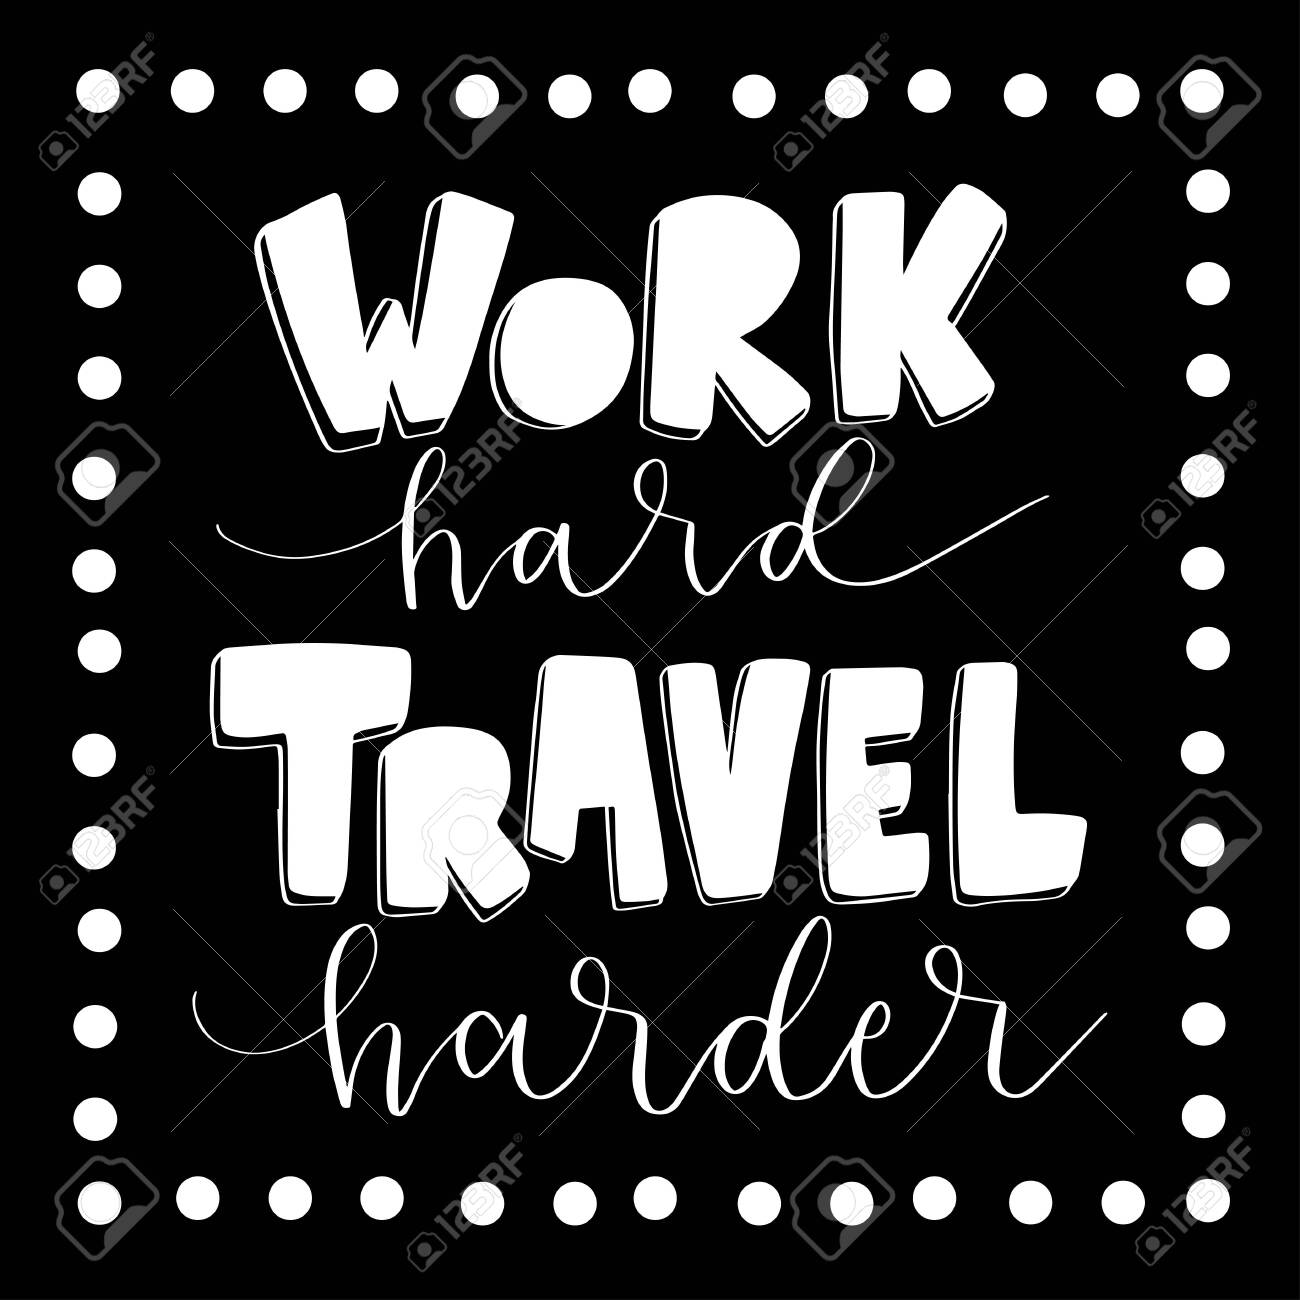 Hand Lettered Work Hard Travel Harder Short Phrase Handwritten Stock Photo Picture And Royalty Free Image Image 152039395